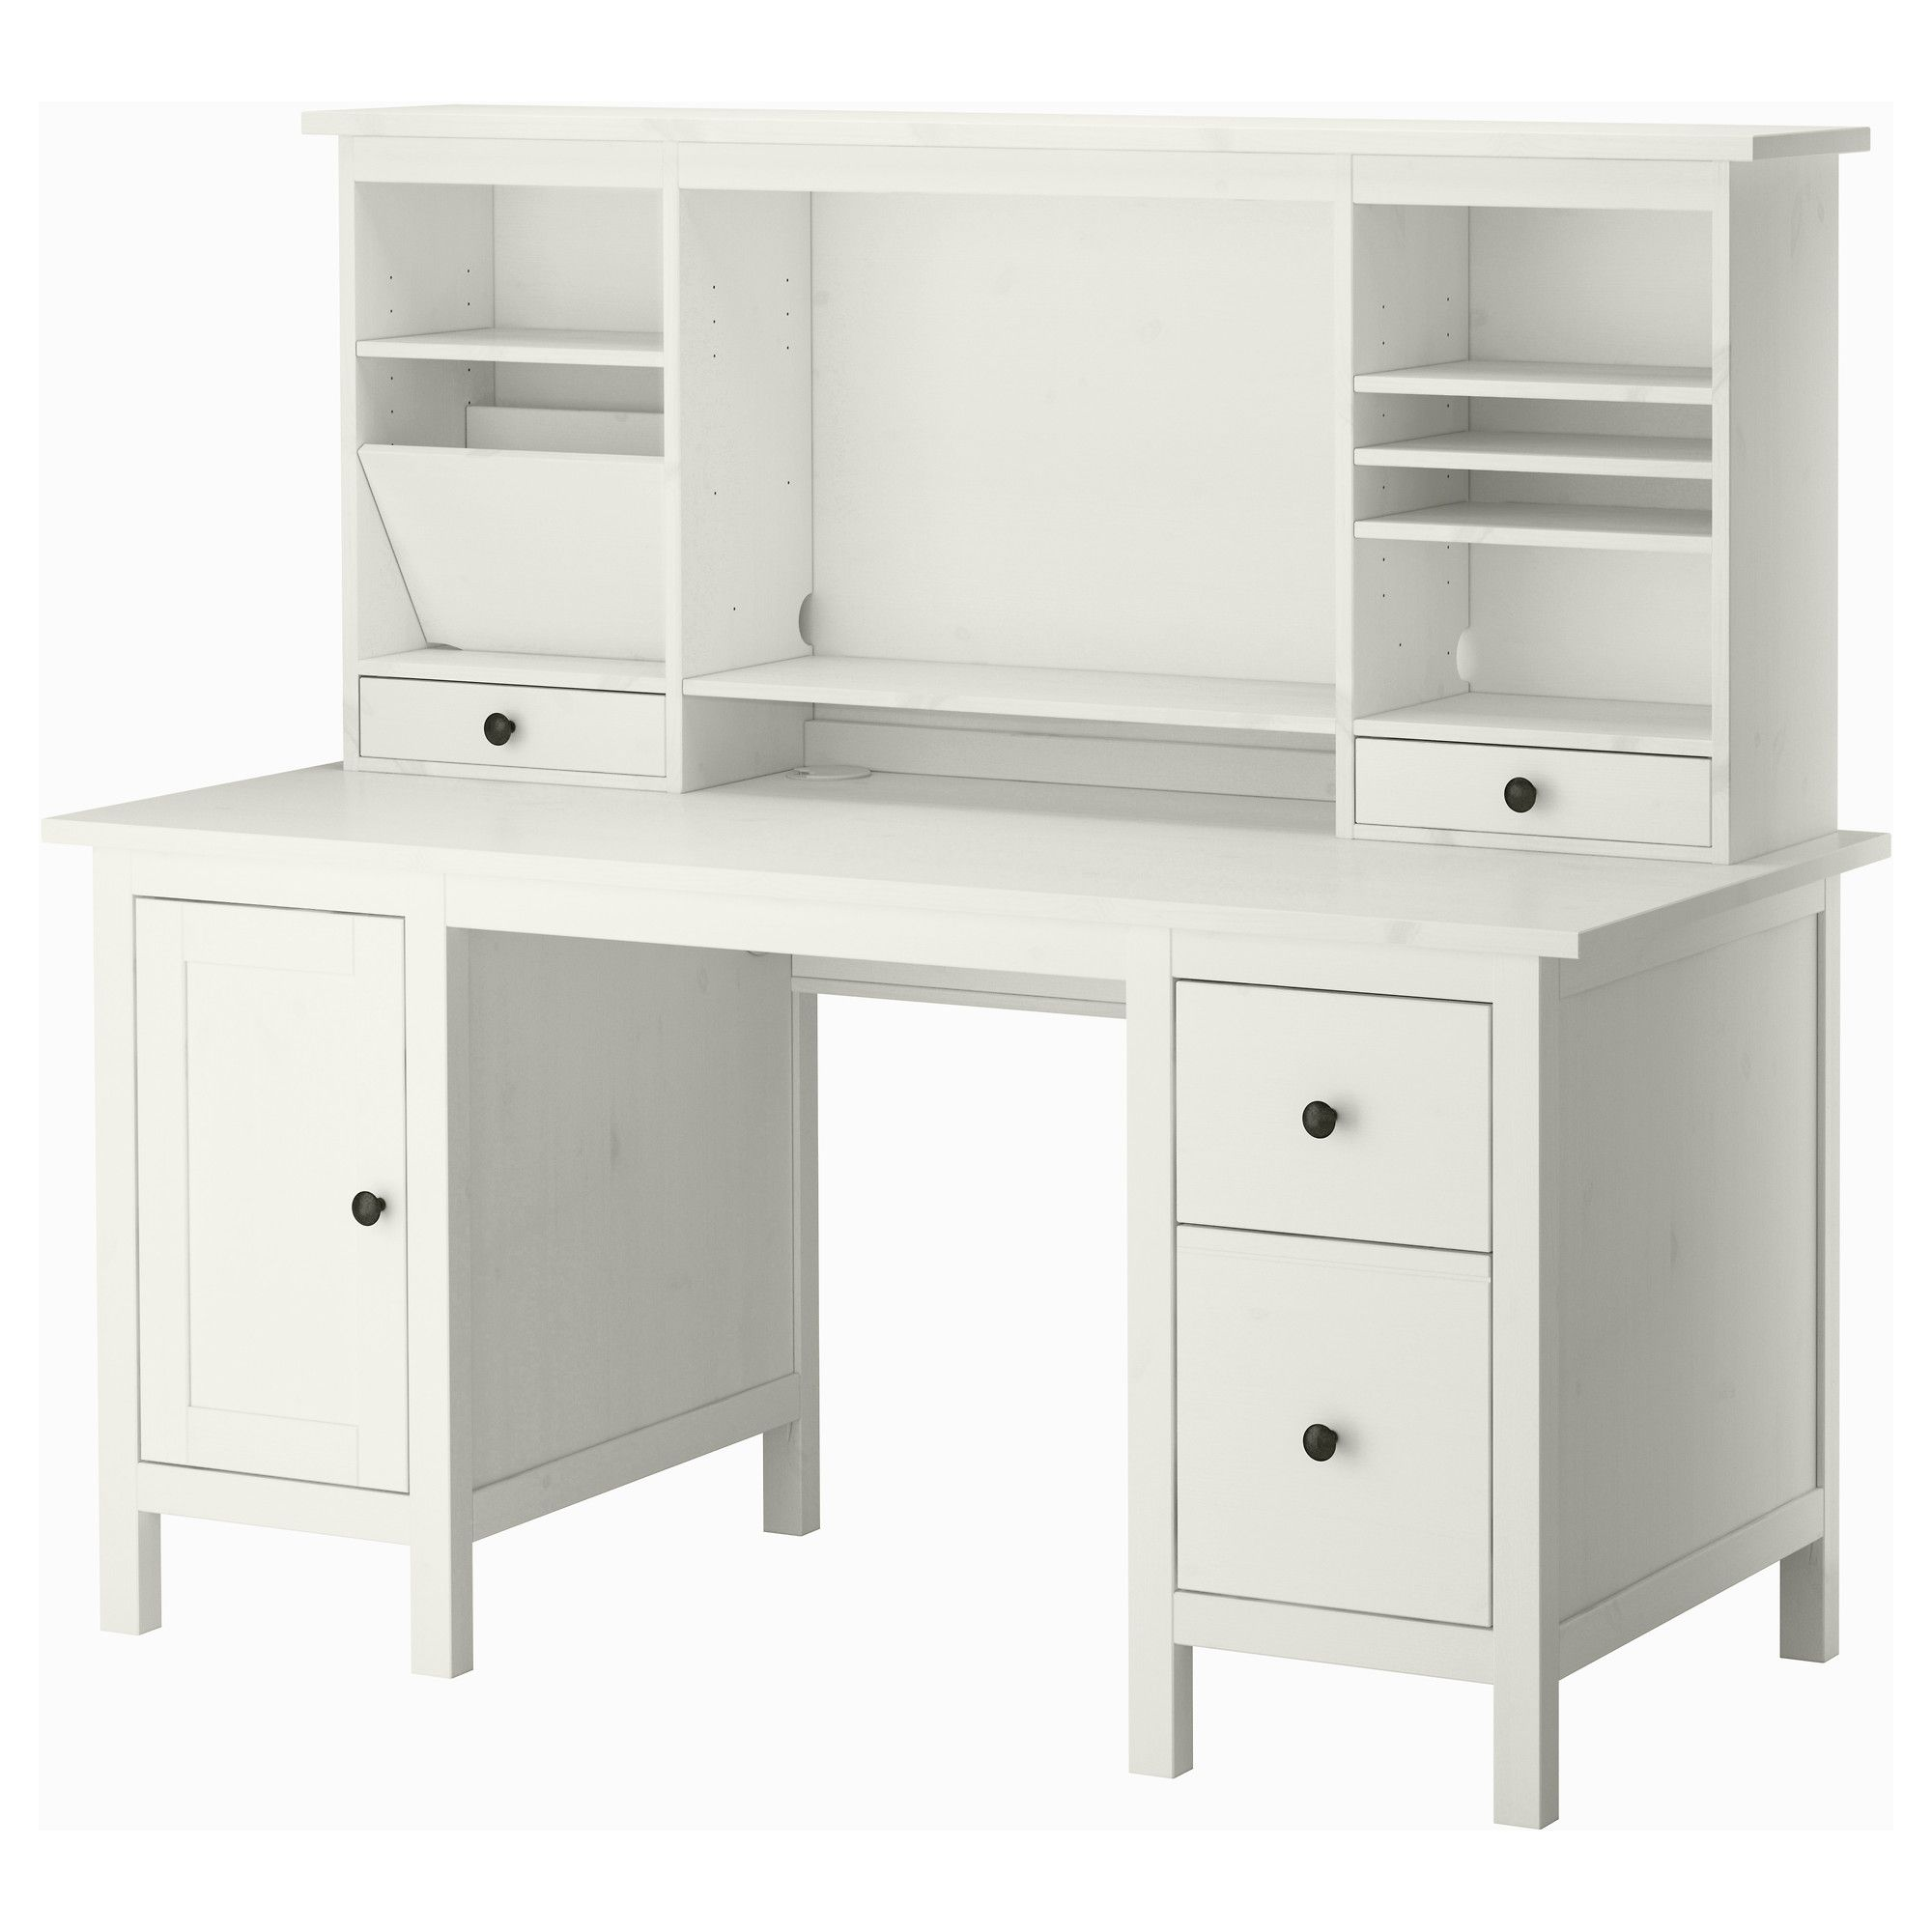 white office desk ikea images galleries with a bite. Black Bedroom Furniture Sets. Home Design Ideas